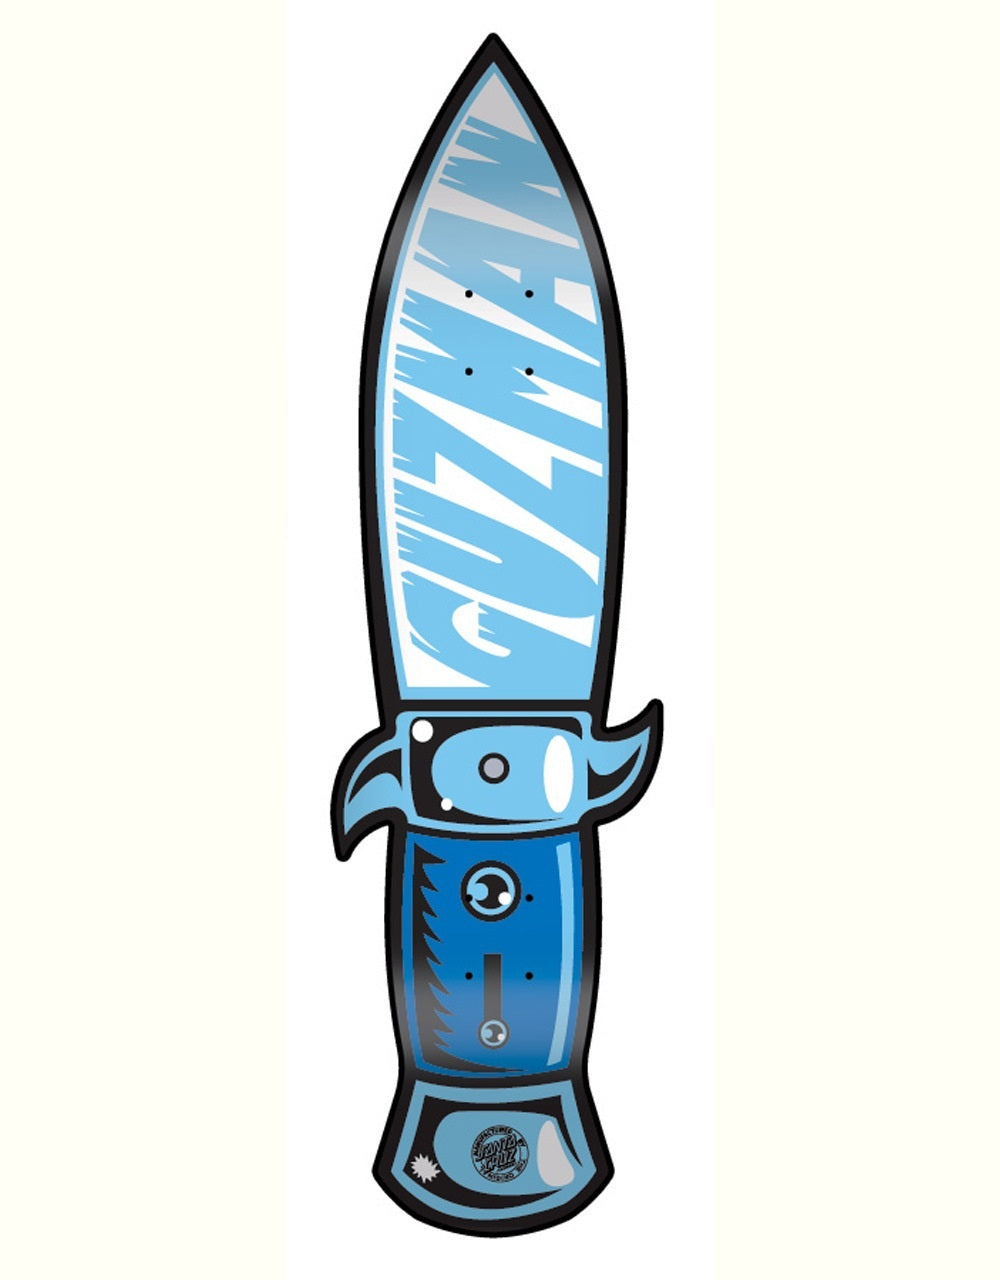 SANTA CRUZ DECK GUZMAN SWITCHBLADE POWERPLY 32.7